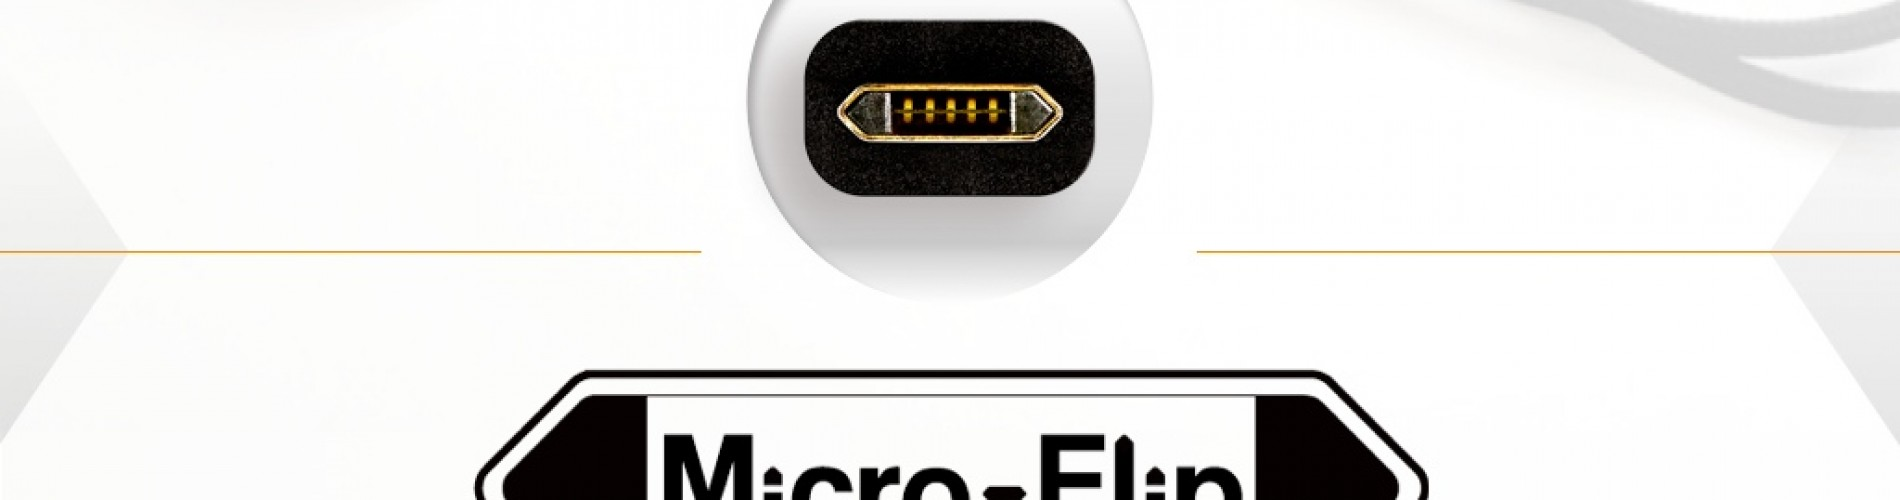 Micro-Flip brings reversible functionality to the microUSB standard